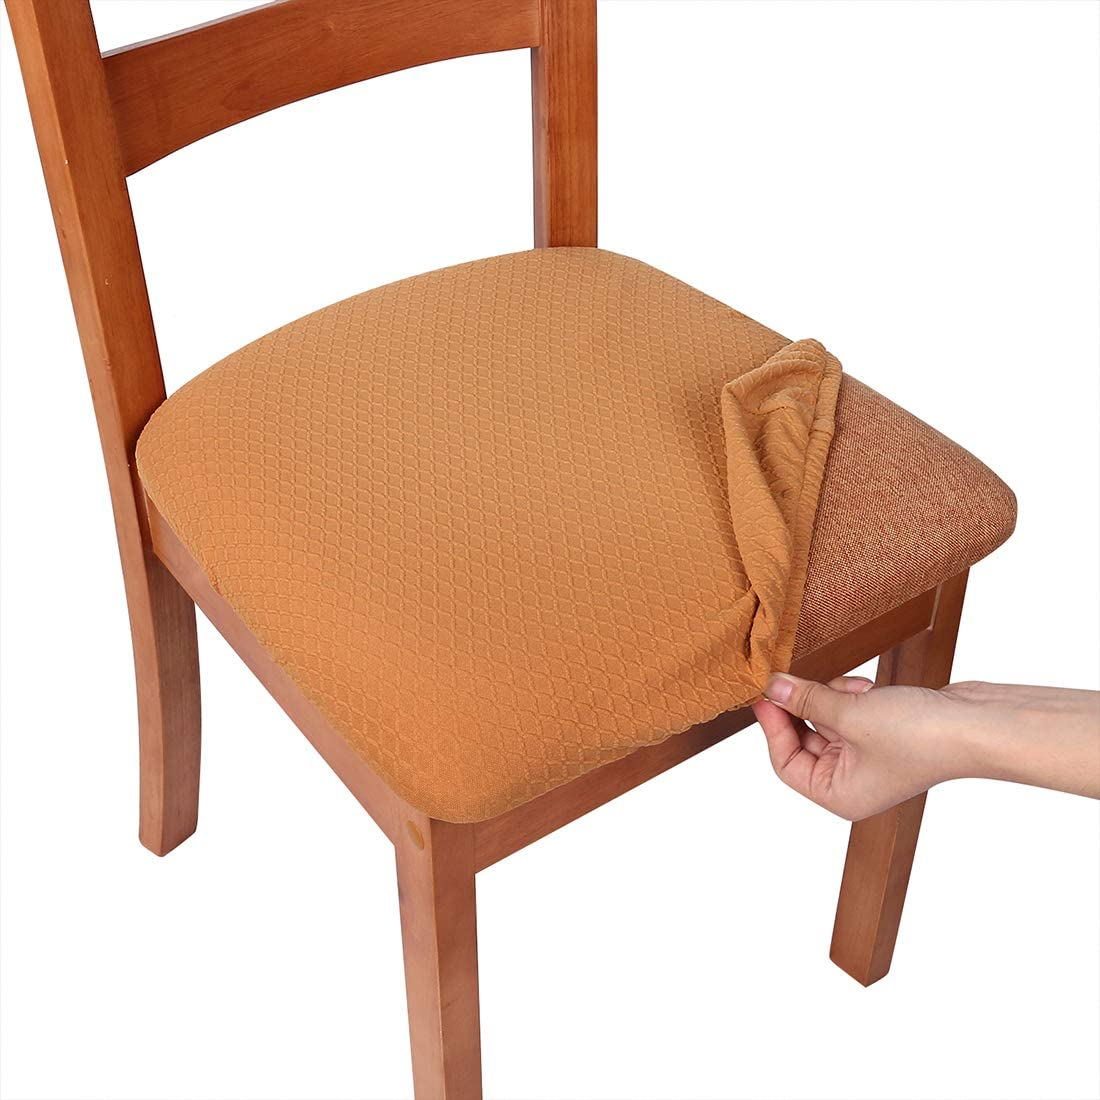 smiry Stretch Spandex Jacquard Dining Room Chair Seat Covers, Removable Washable Anti-Dust Dinning Upholstered Chair Seat Cushion Slipcovers - Set of 4, Camel